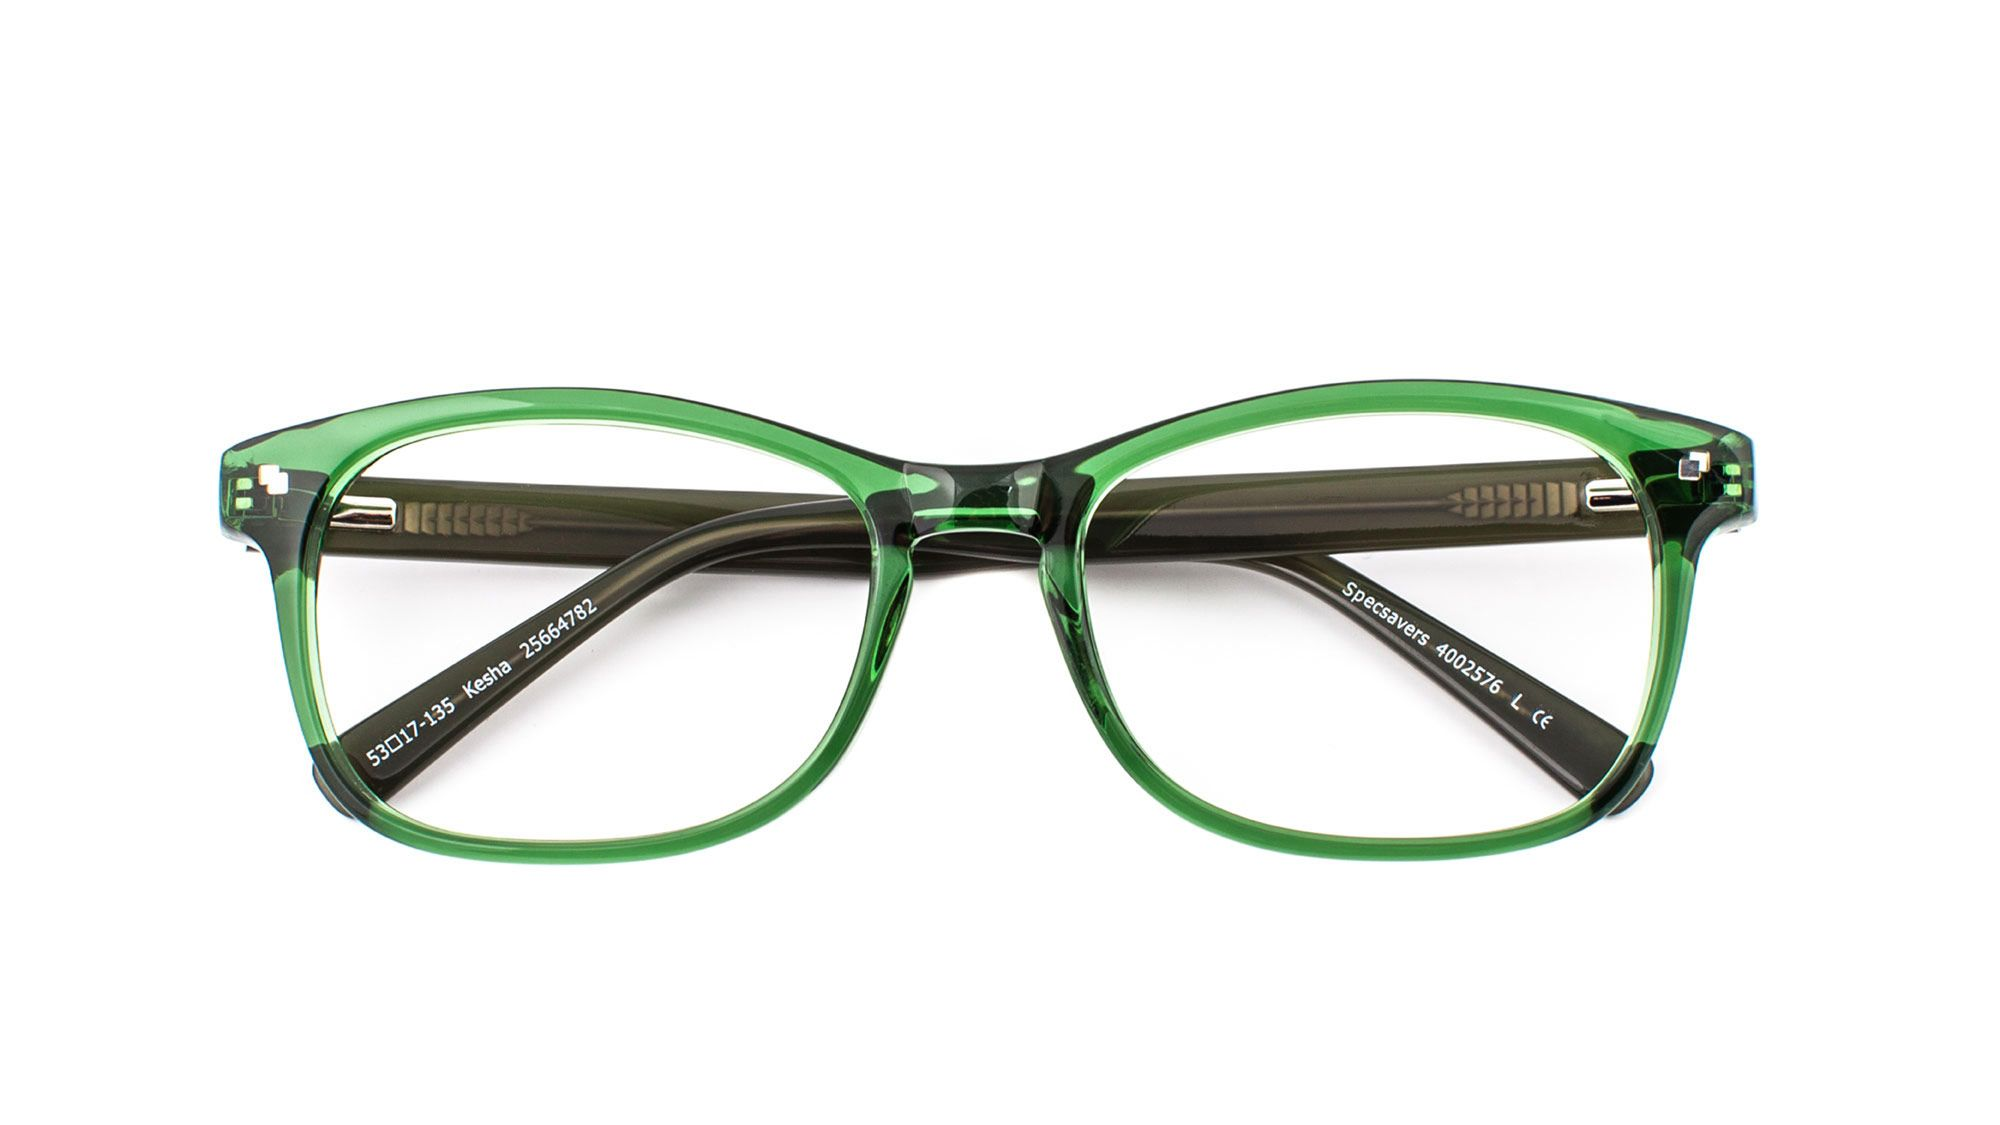 Specsavers Glasses Frames : KESHA Brillen op Specsavers Specsavers Websites ...